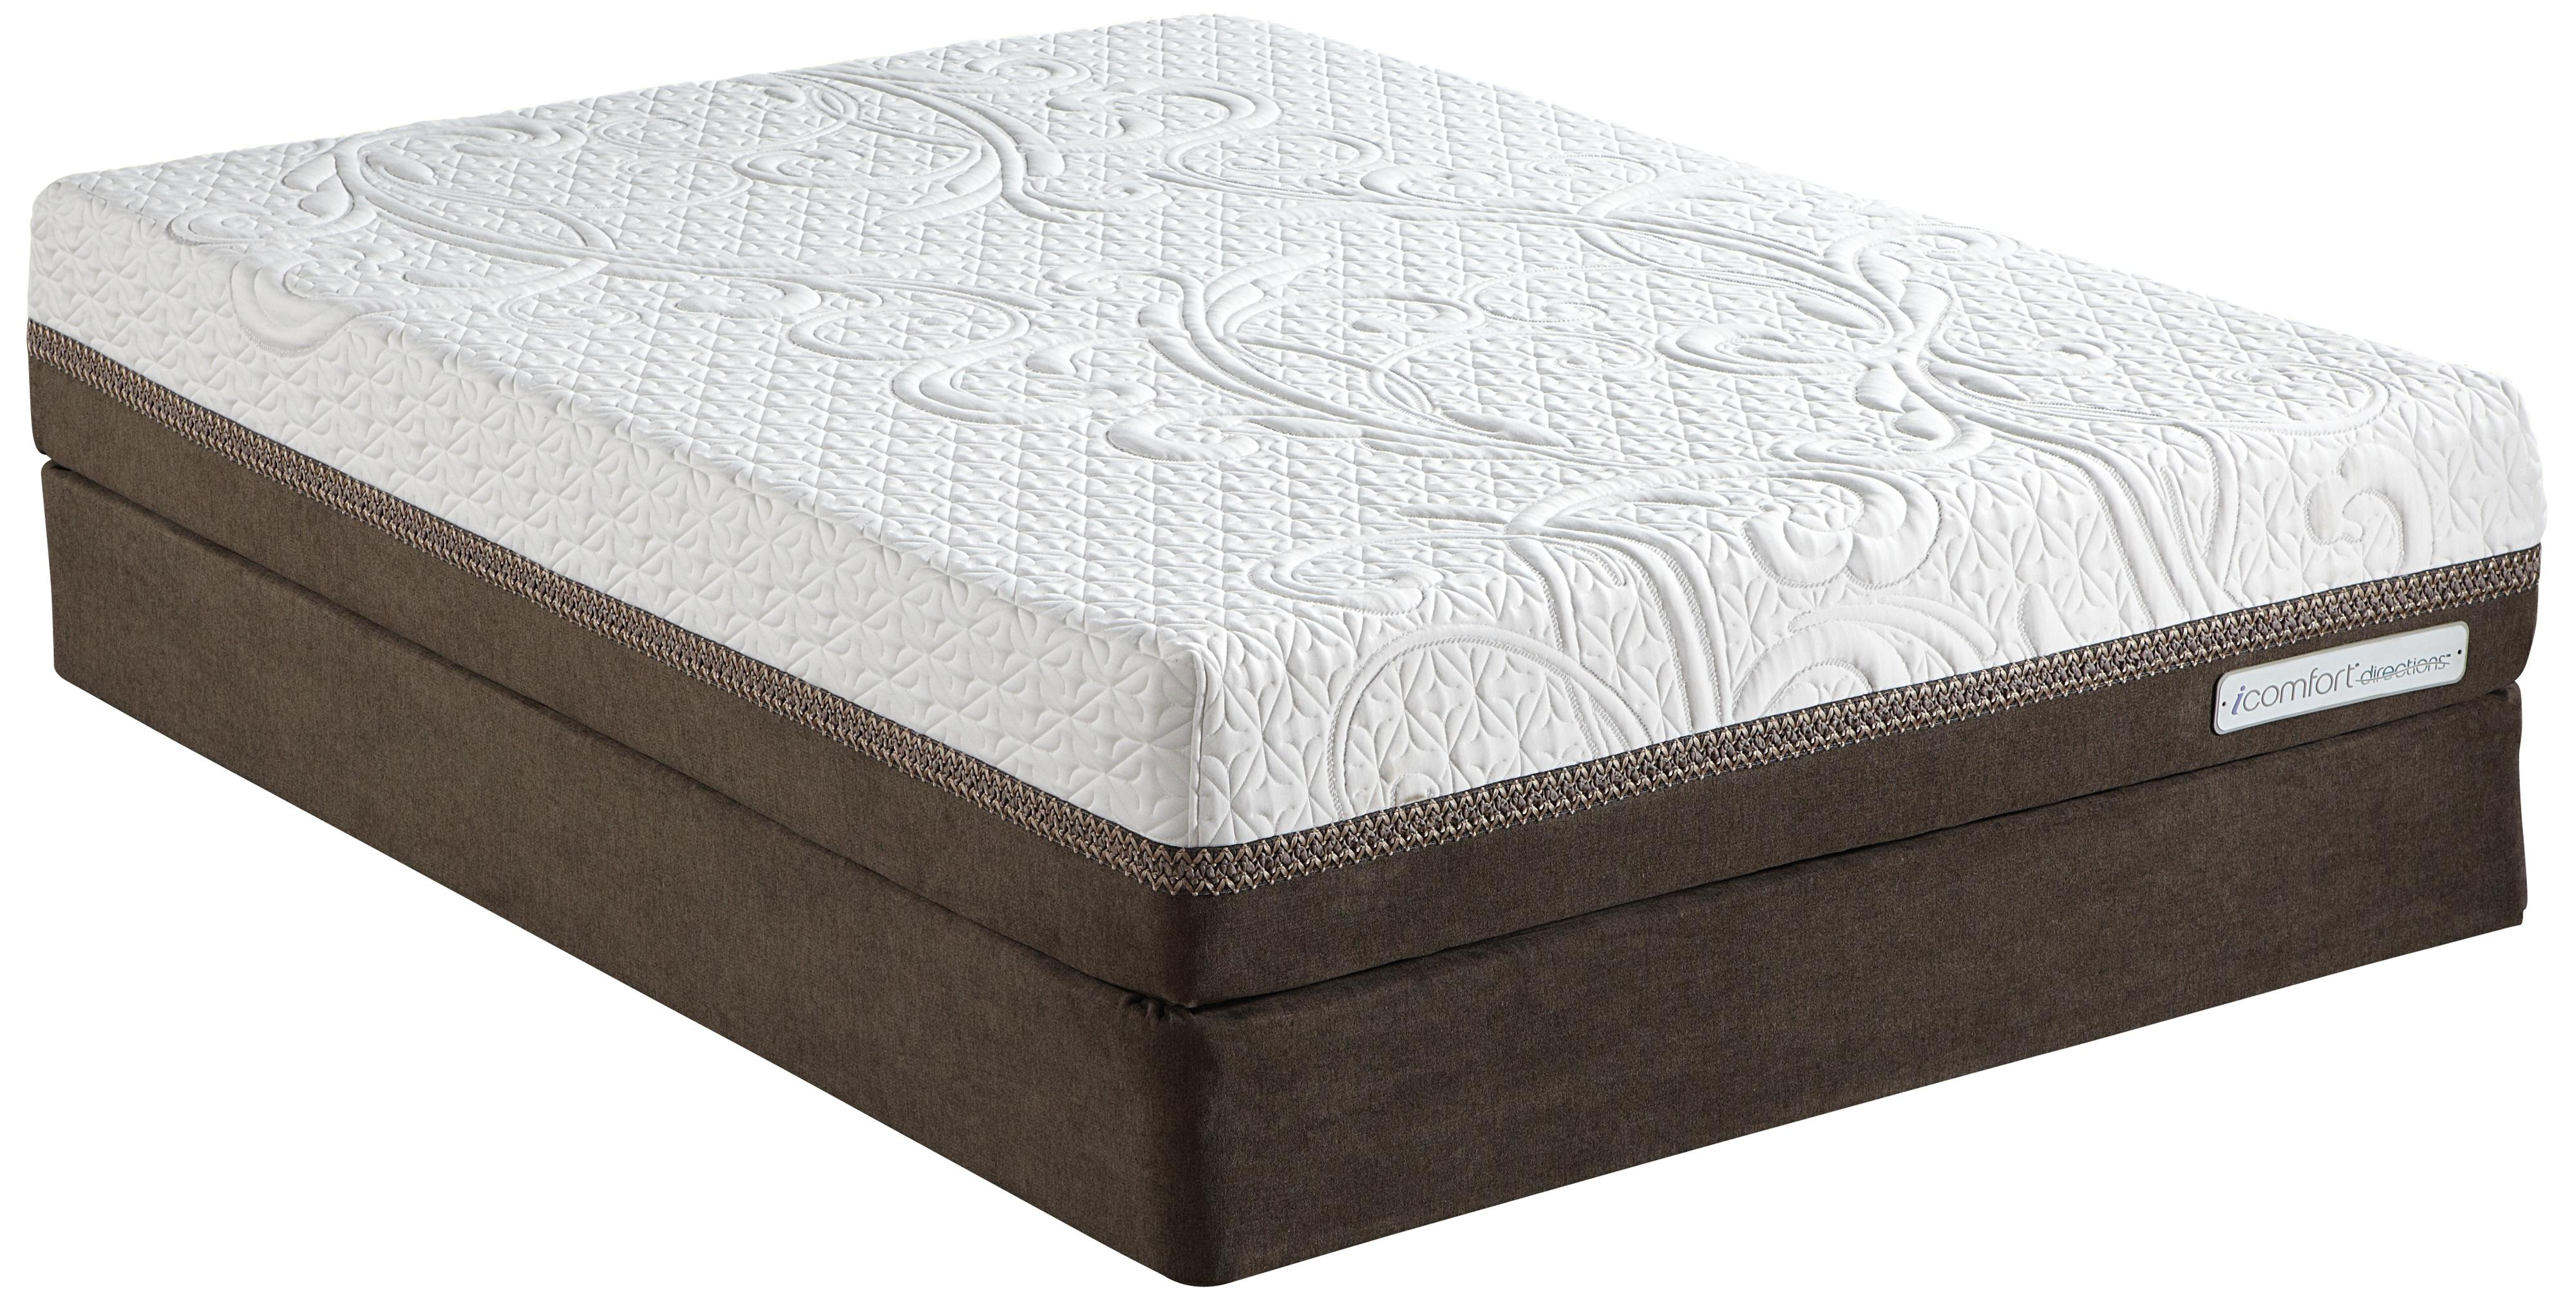 Serta iComfort Directions Epic Cal King Memory Foam Mattress Set  - Item Number: 823018CK+2x824399CK